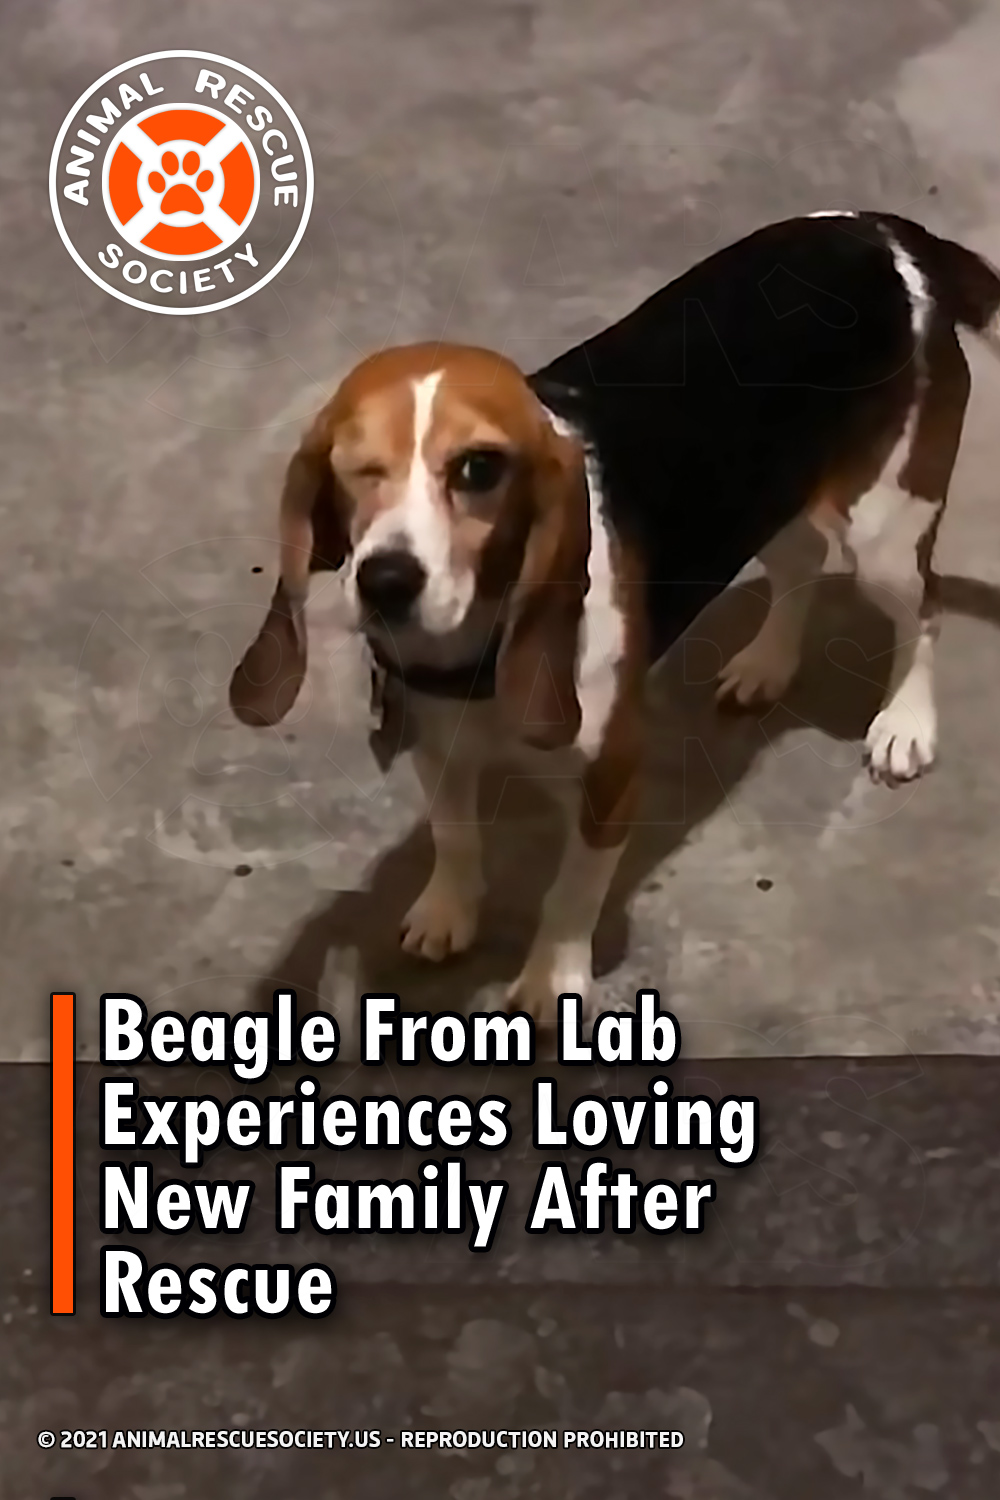 Beagle From Lab Experiences Loving New Family After Rescue